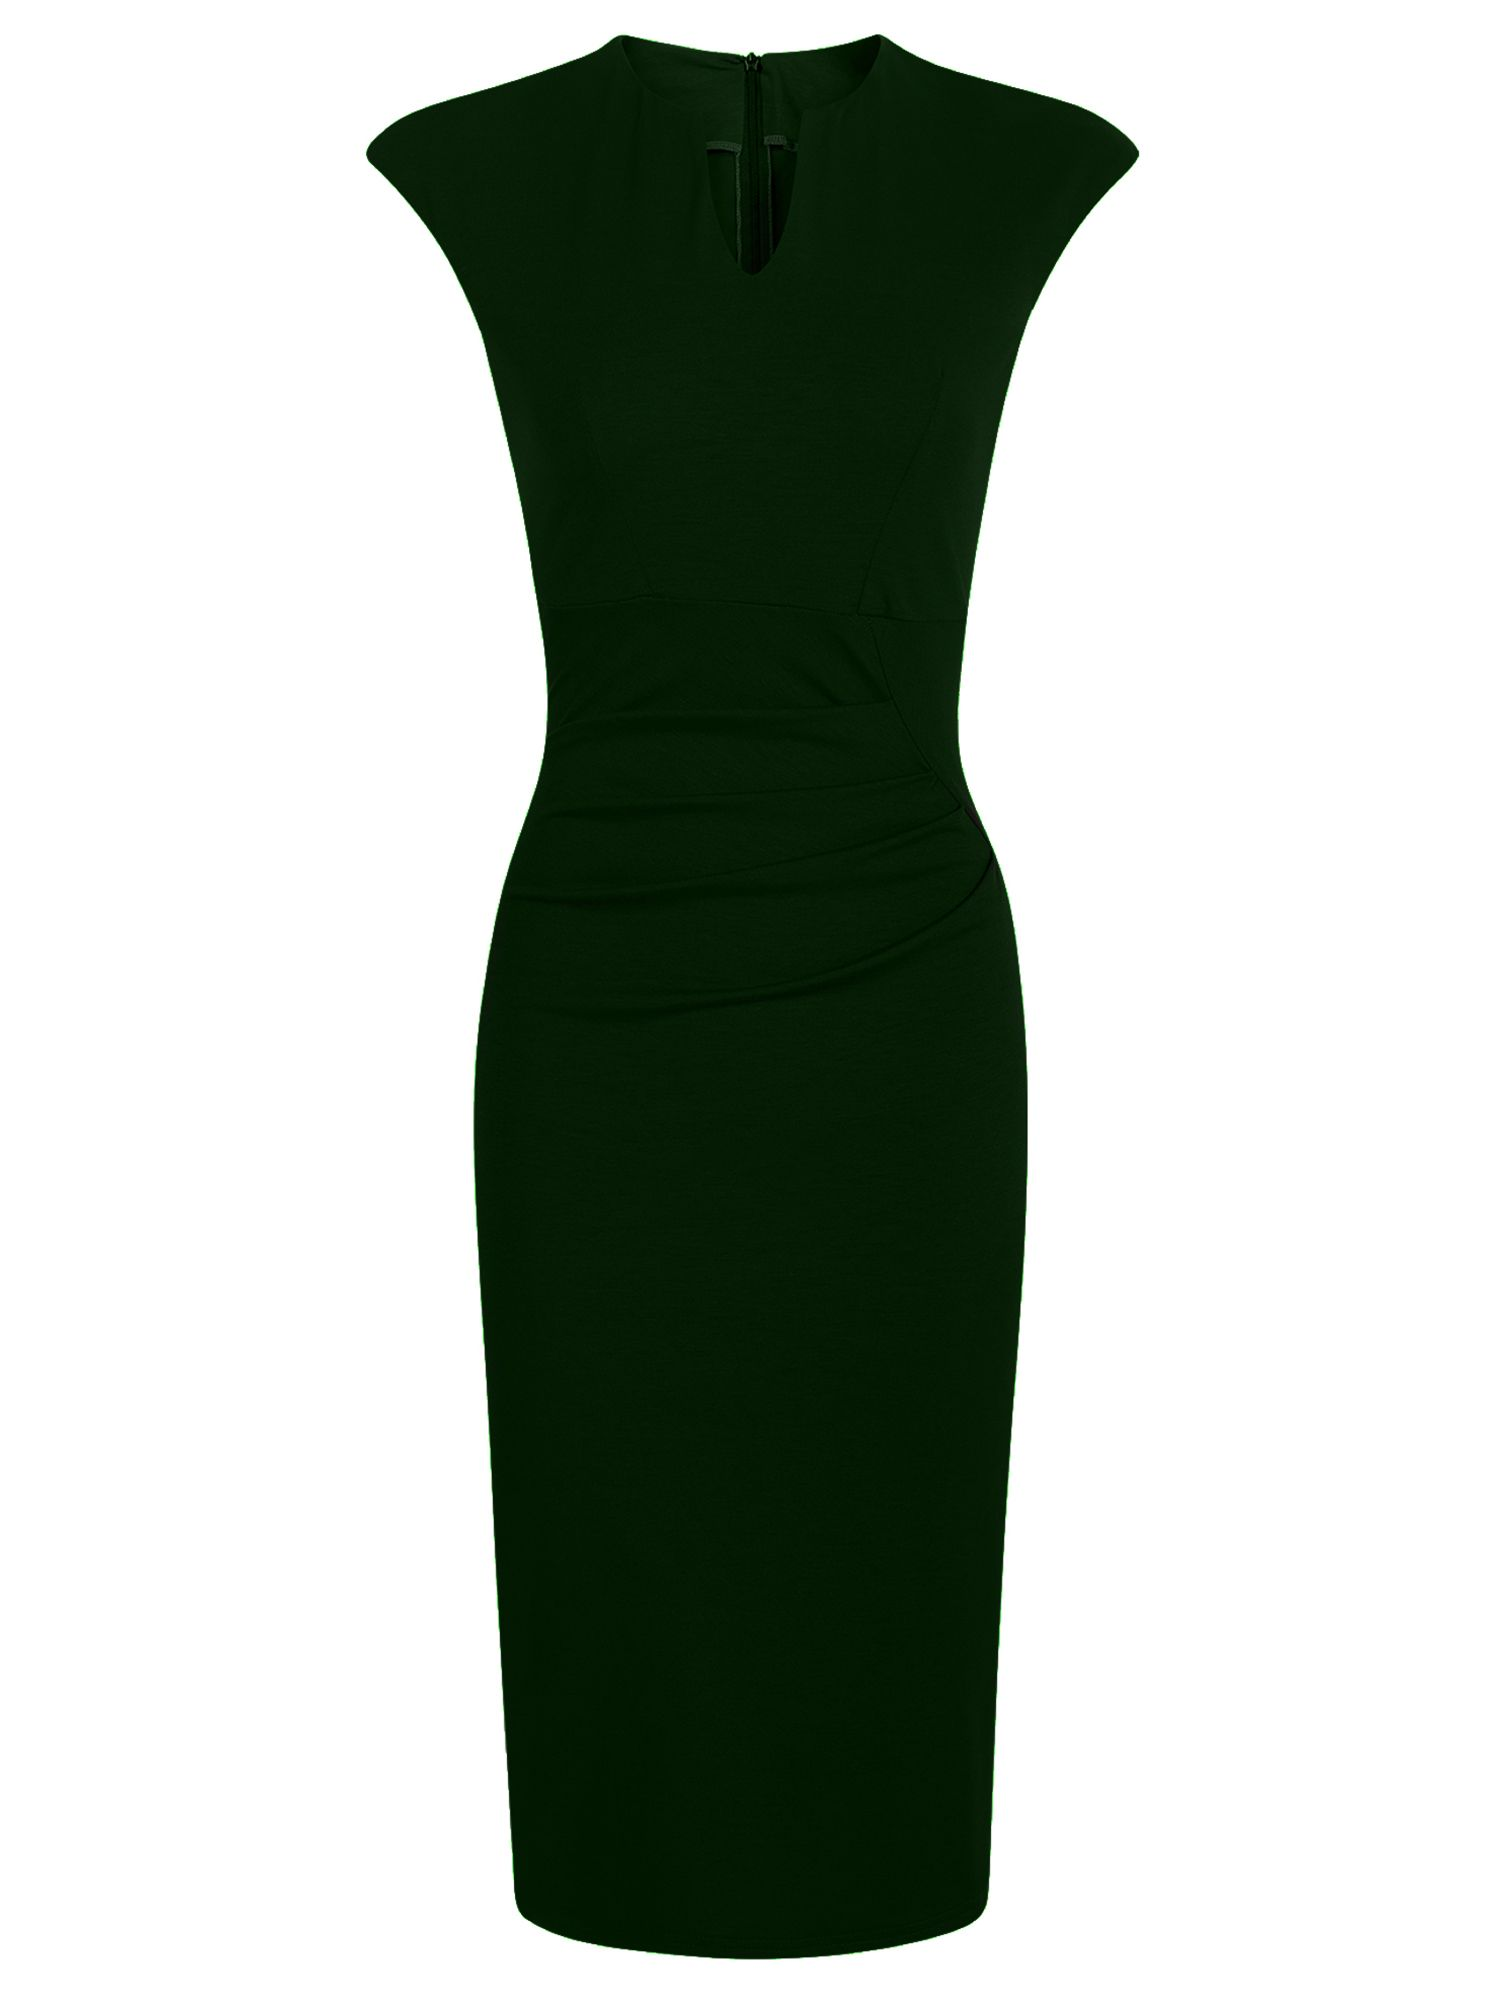 HotSquash Kensington V Cut Jersey Dress, Green